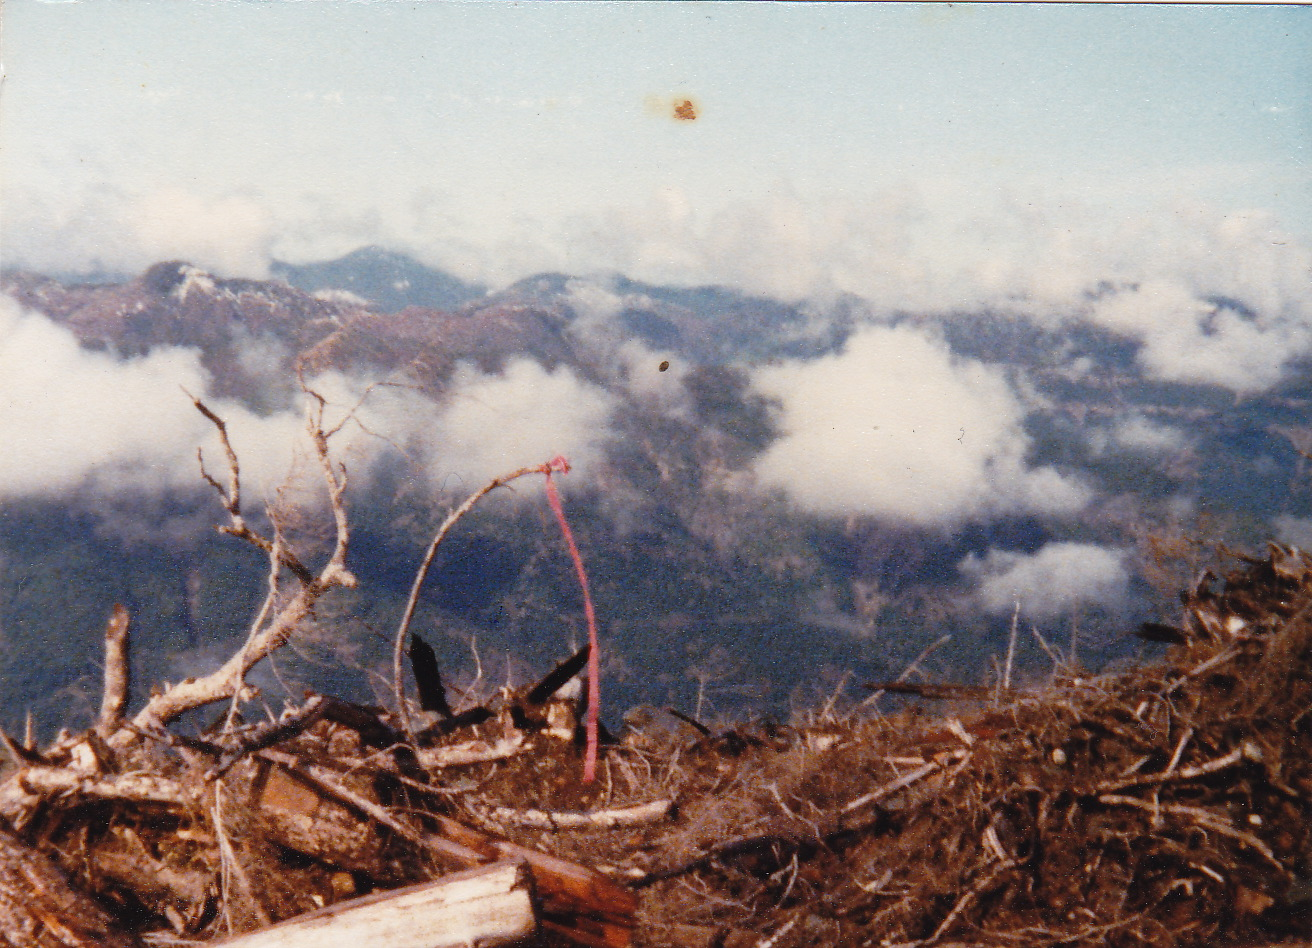 Debris left on logging site, near Lake Cowichan, - Photo taken when author was treeplanting in 1980